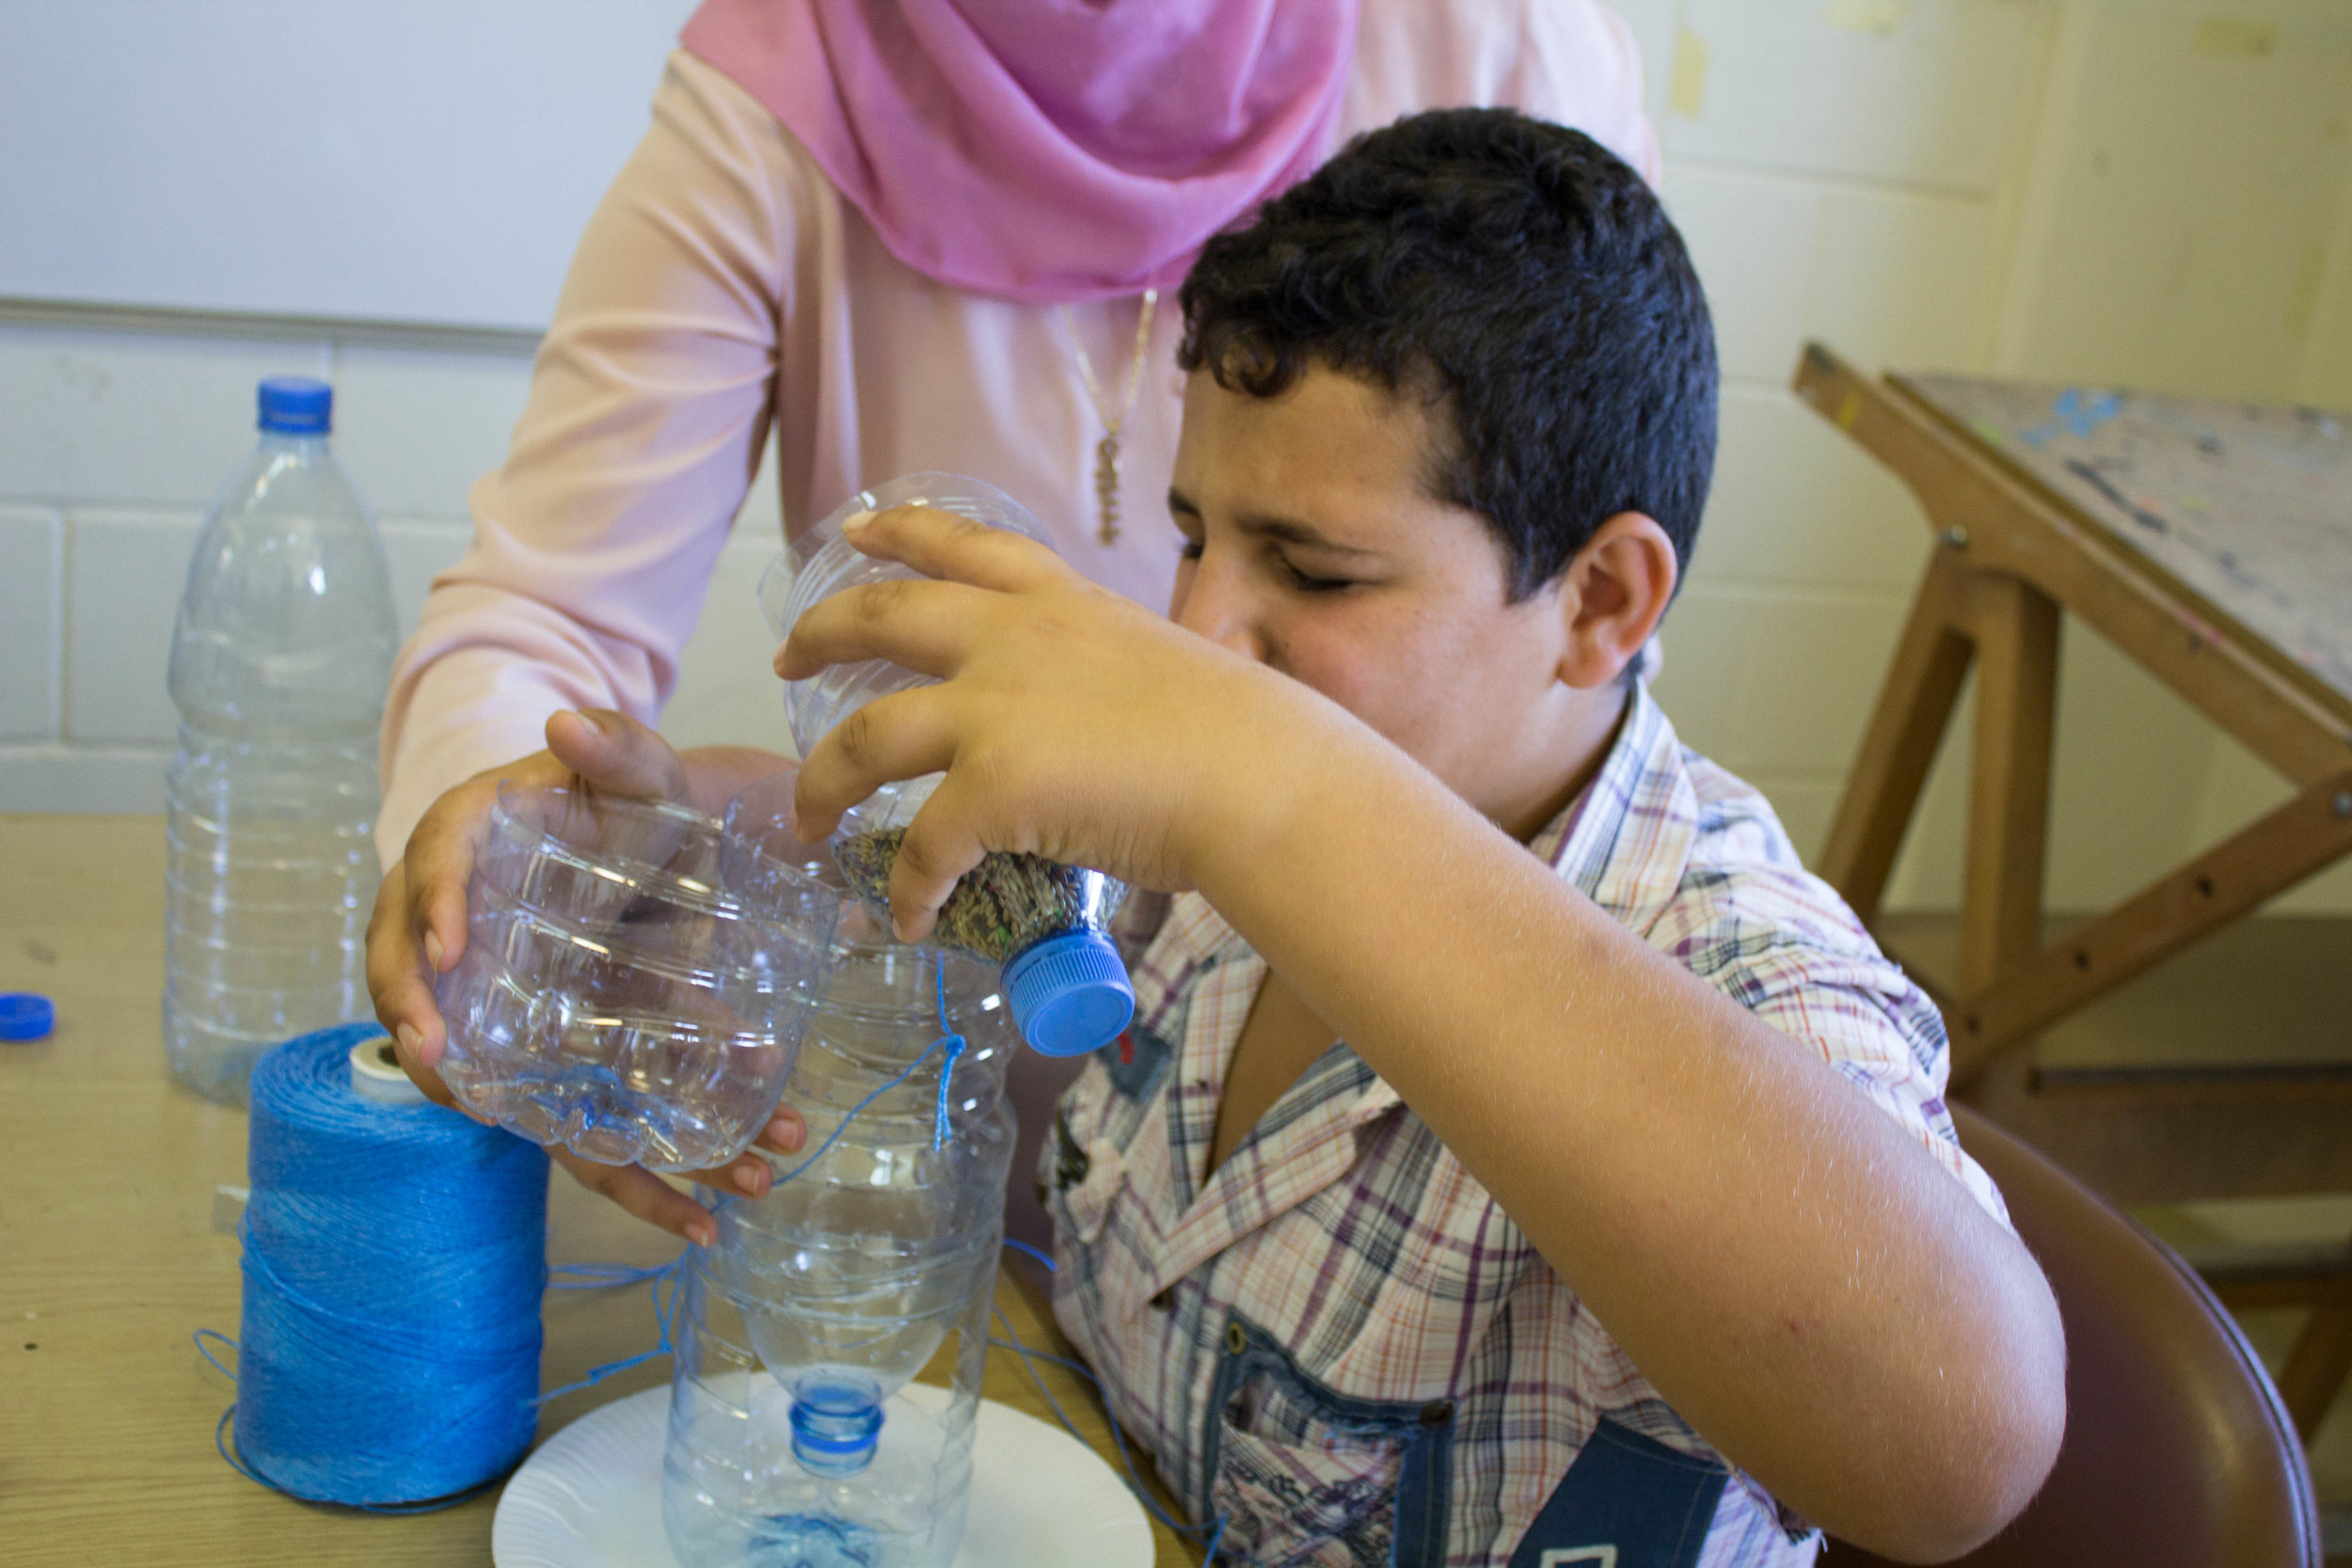 In this photo: a volunteer helps a blind student with a science experiment involving plastic bottles